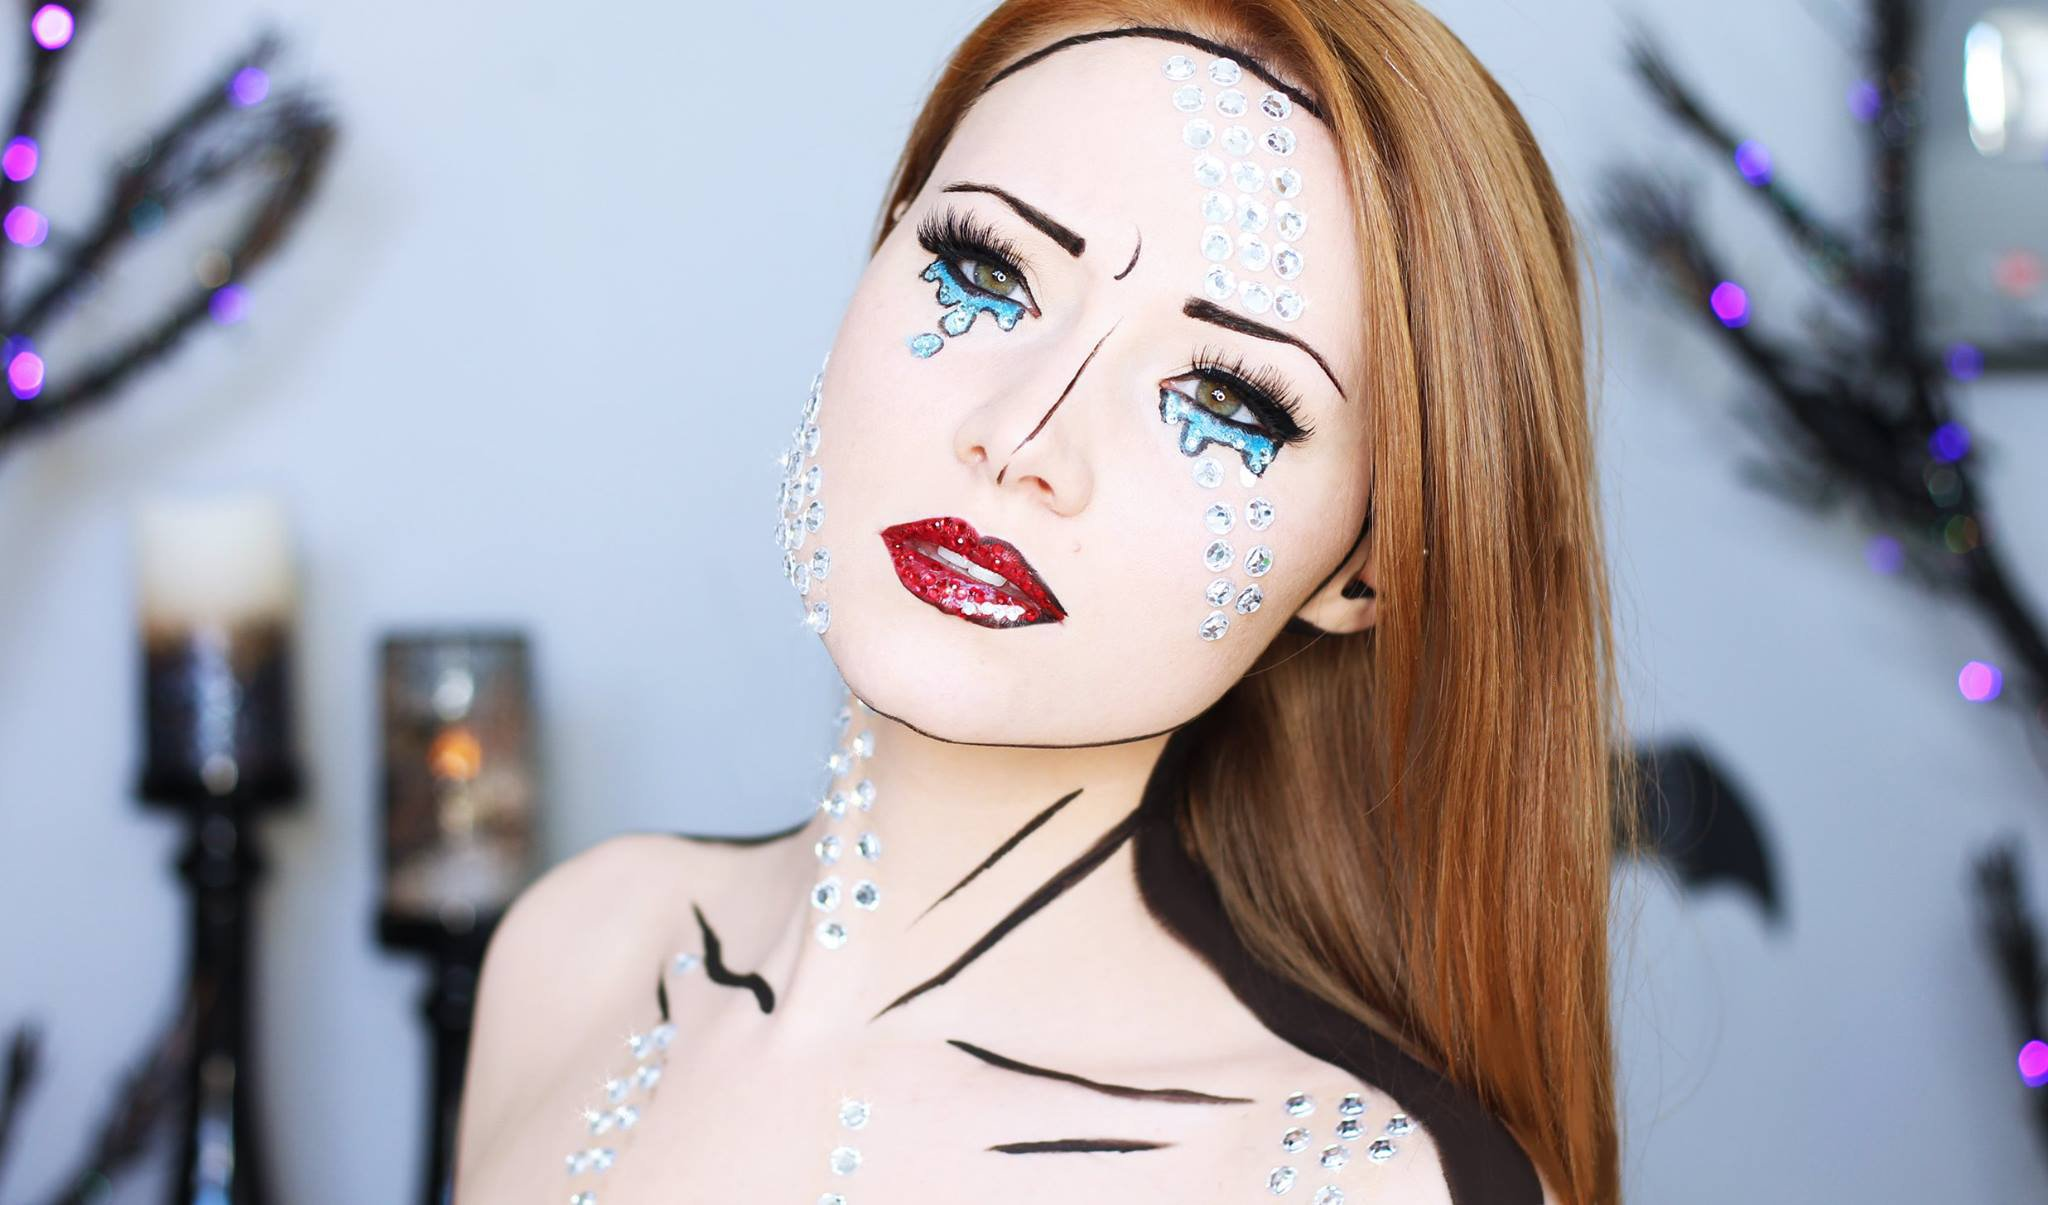 Classic doll faced beauty shows birthday suit - 1 1